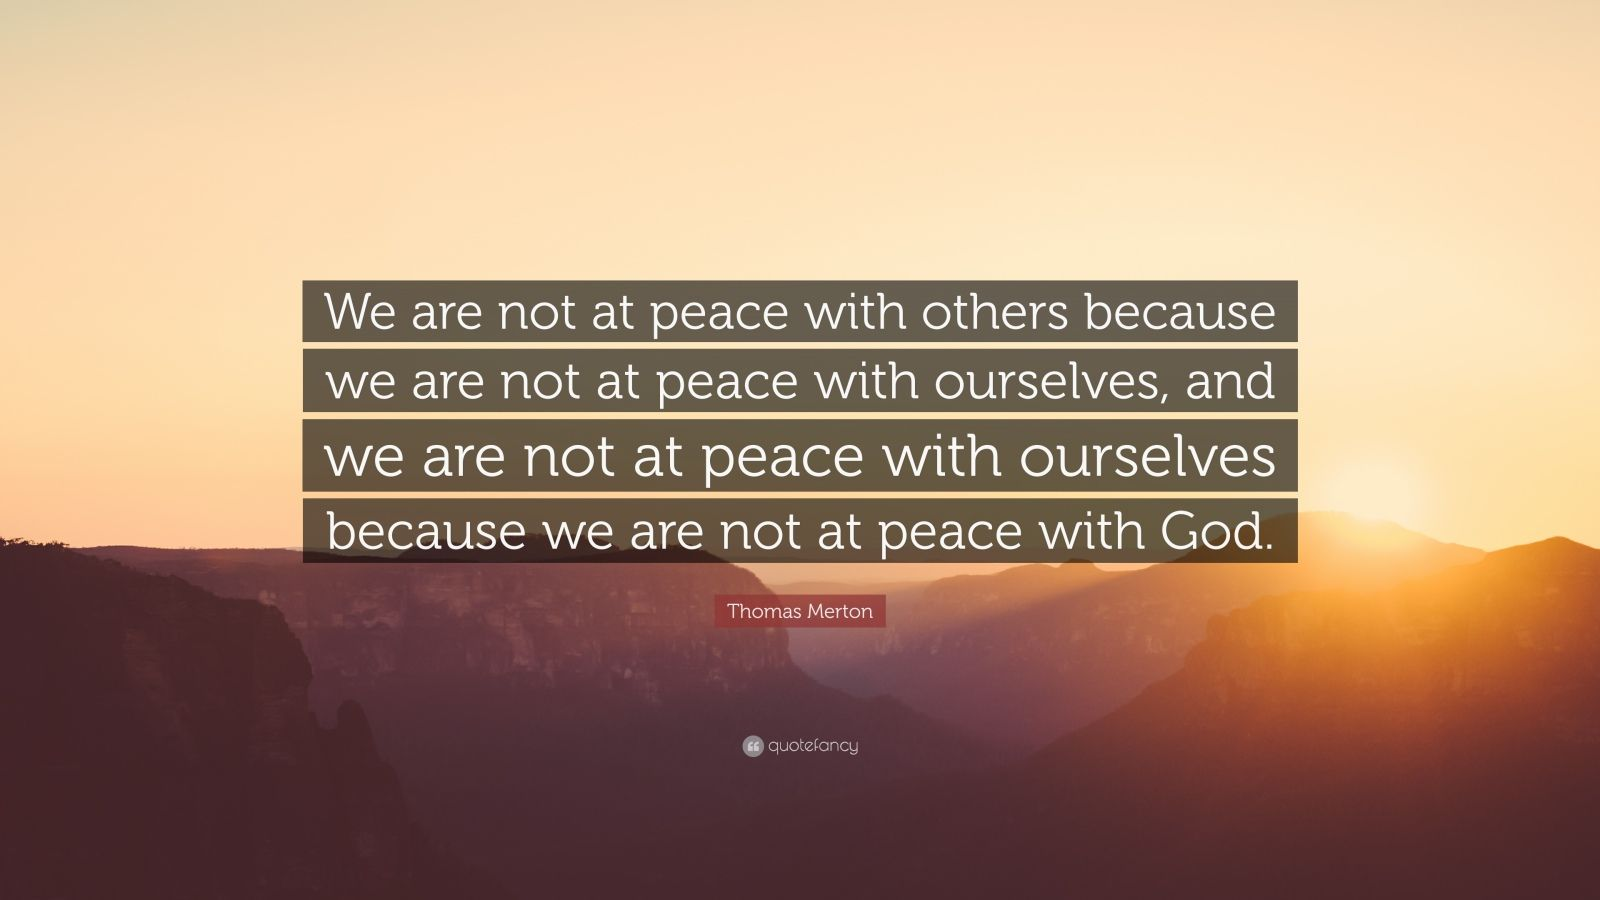 """Thomas Merton Quote: """"We are not at peace with others because we are not at peace with ourselves, and we are not at peace with ourselves because we are not at peace with God."""""""